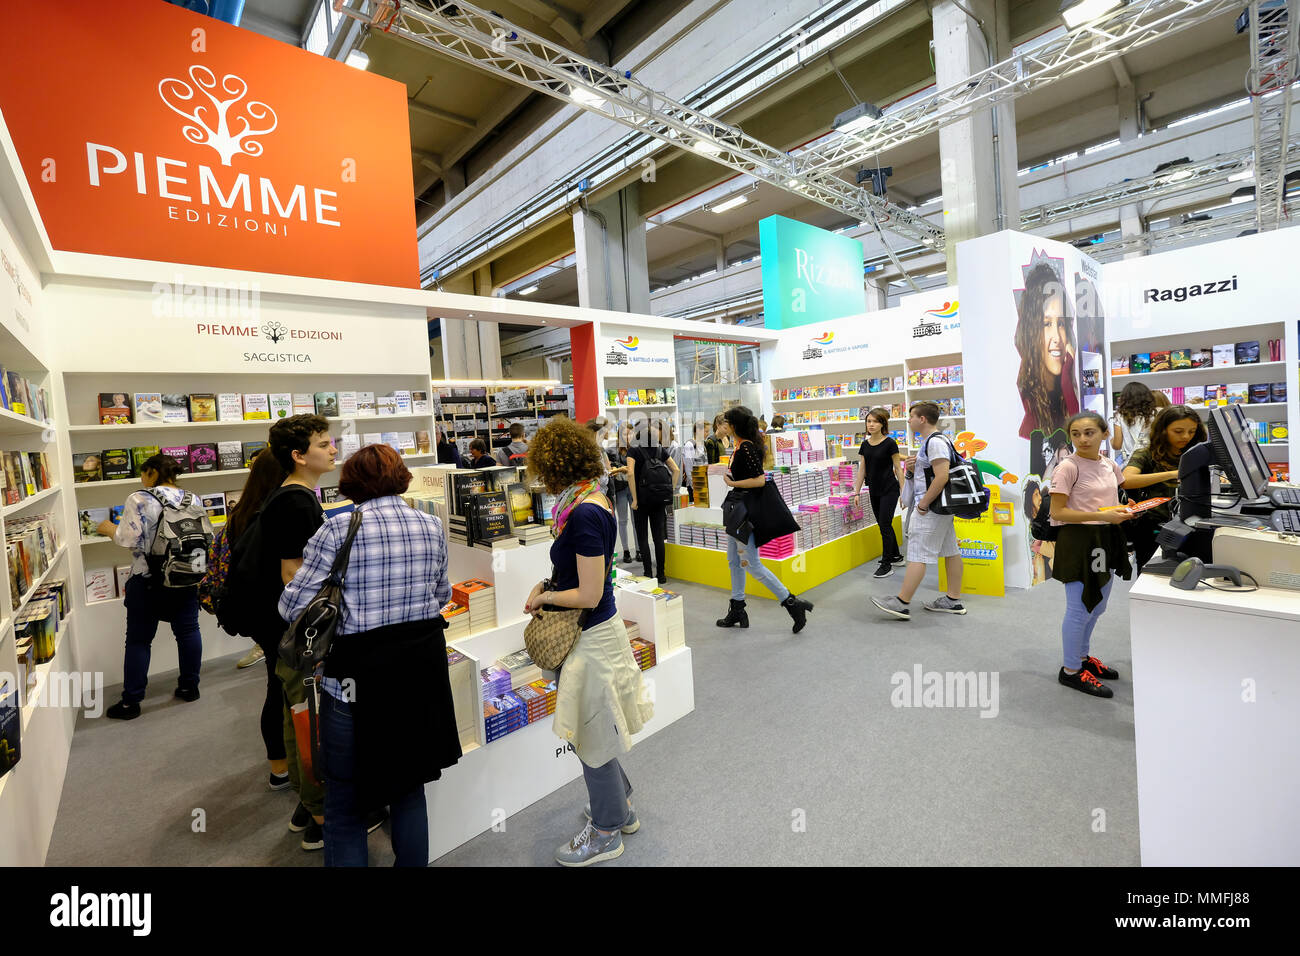 Turin, Piedmont, Italy, 10th May, 2018. International Book fair 2018,first day.Piemme publisher's stand Credit: RENATO VALTERZA/Alamy Live News - Stock Image